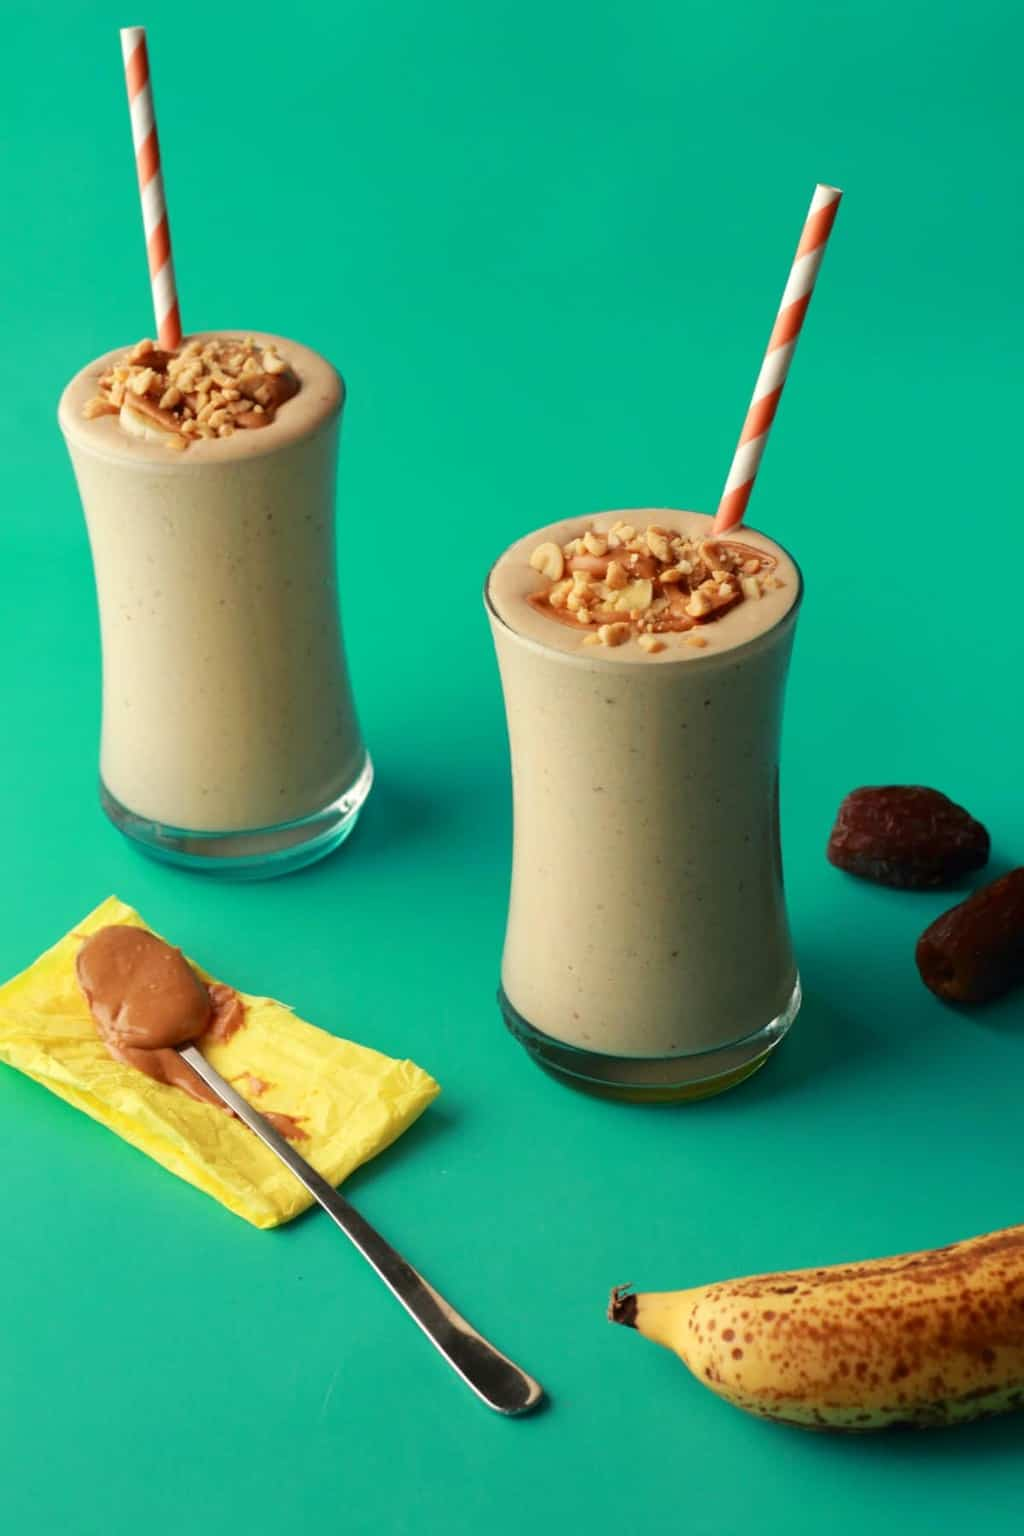 Peanut Butter Banana Smoothie on a green background with medjool dates, a banana and a spoonful of peanut butter.